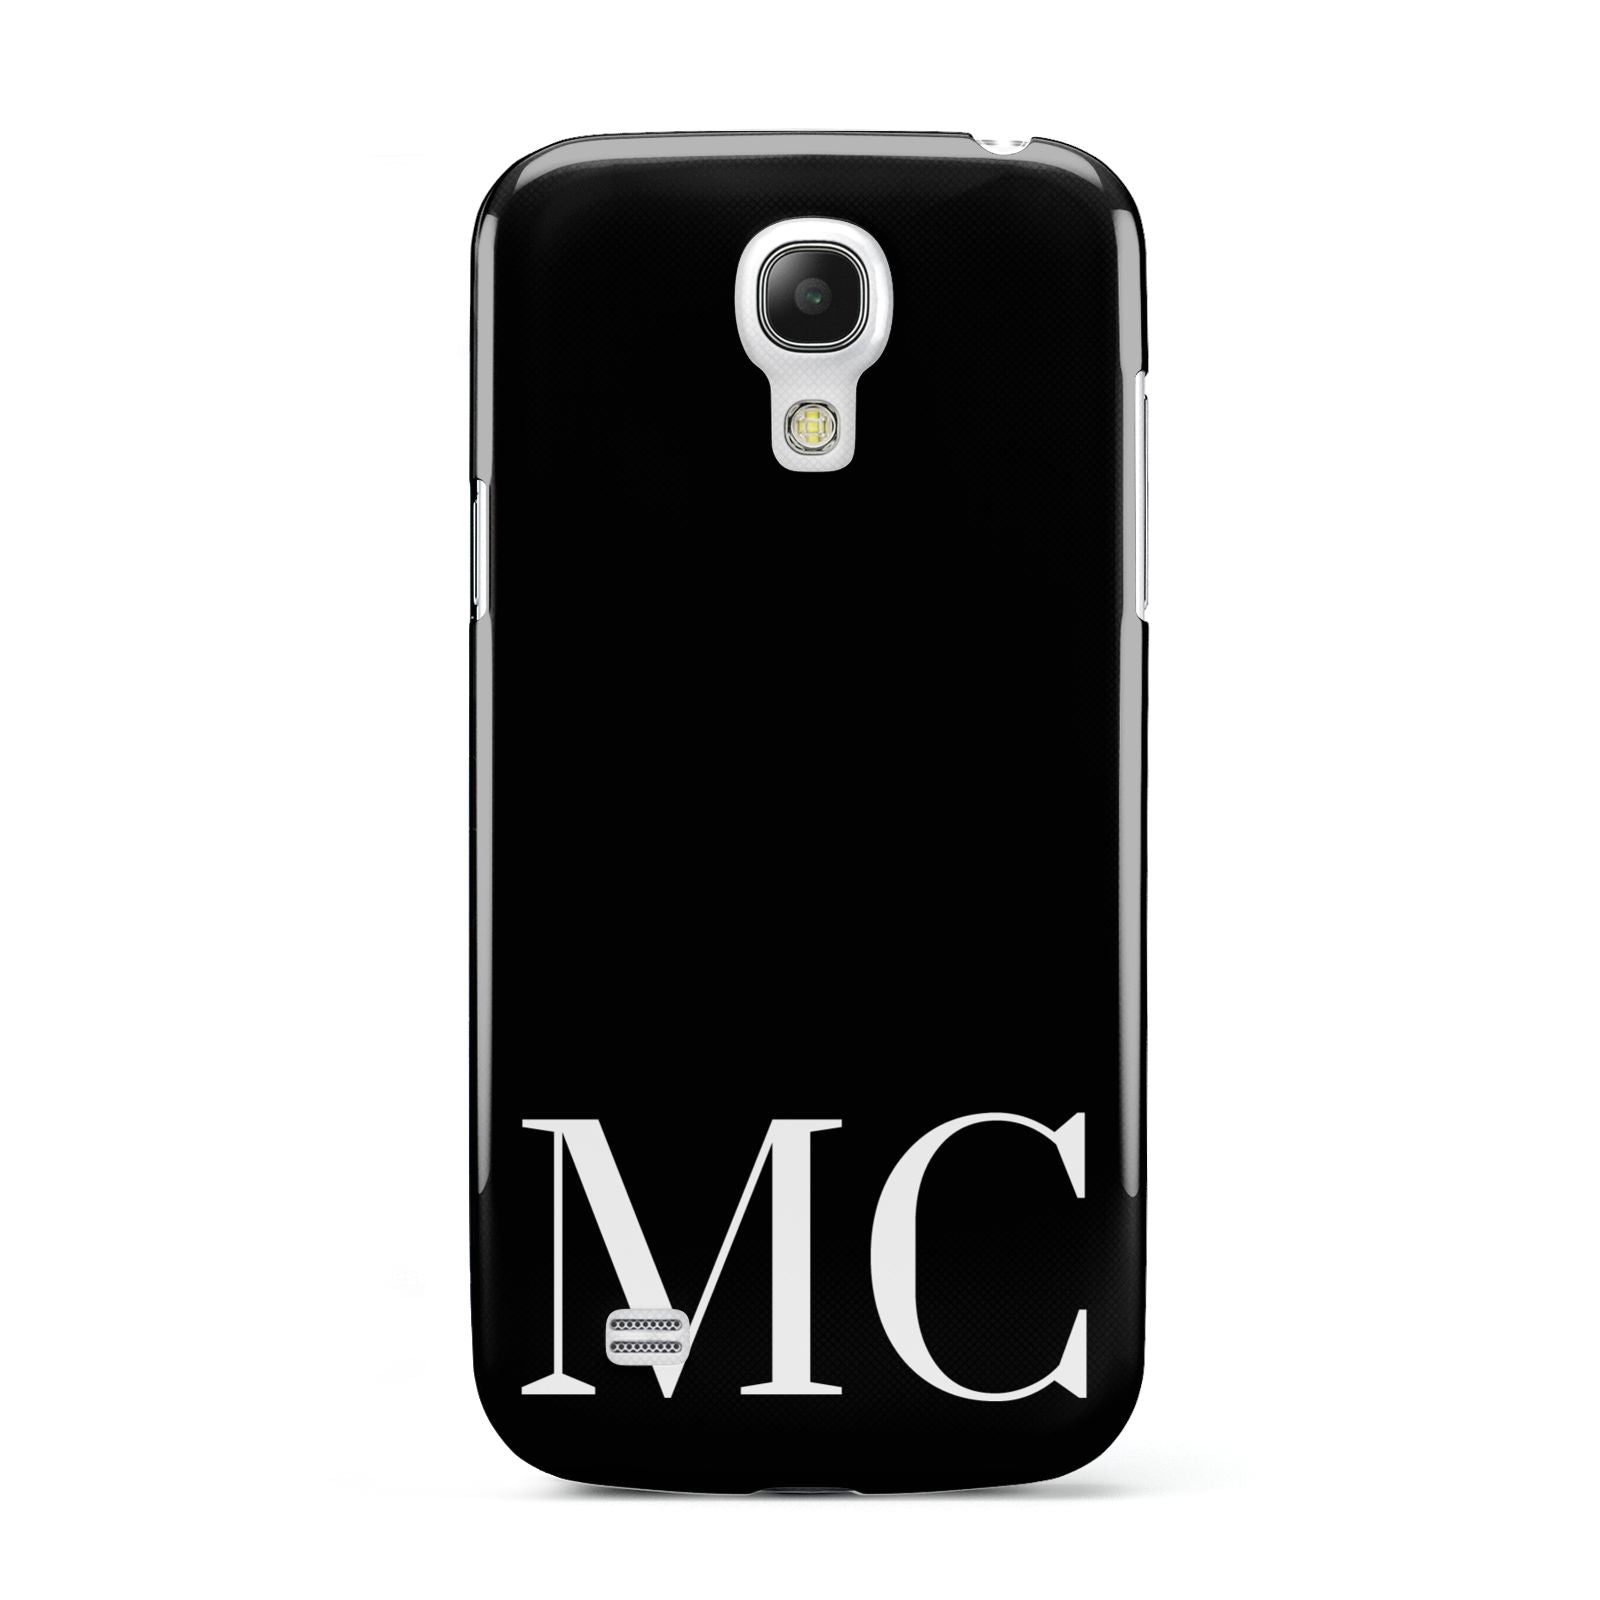 Initials Personalised 1 Samsung Galaxy S4 Mini Case